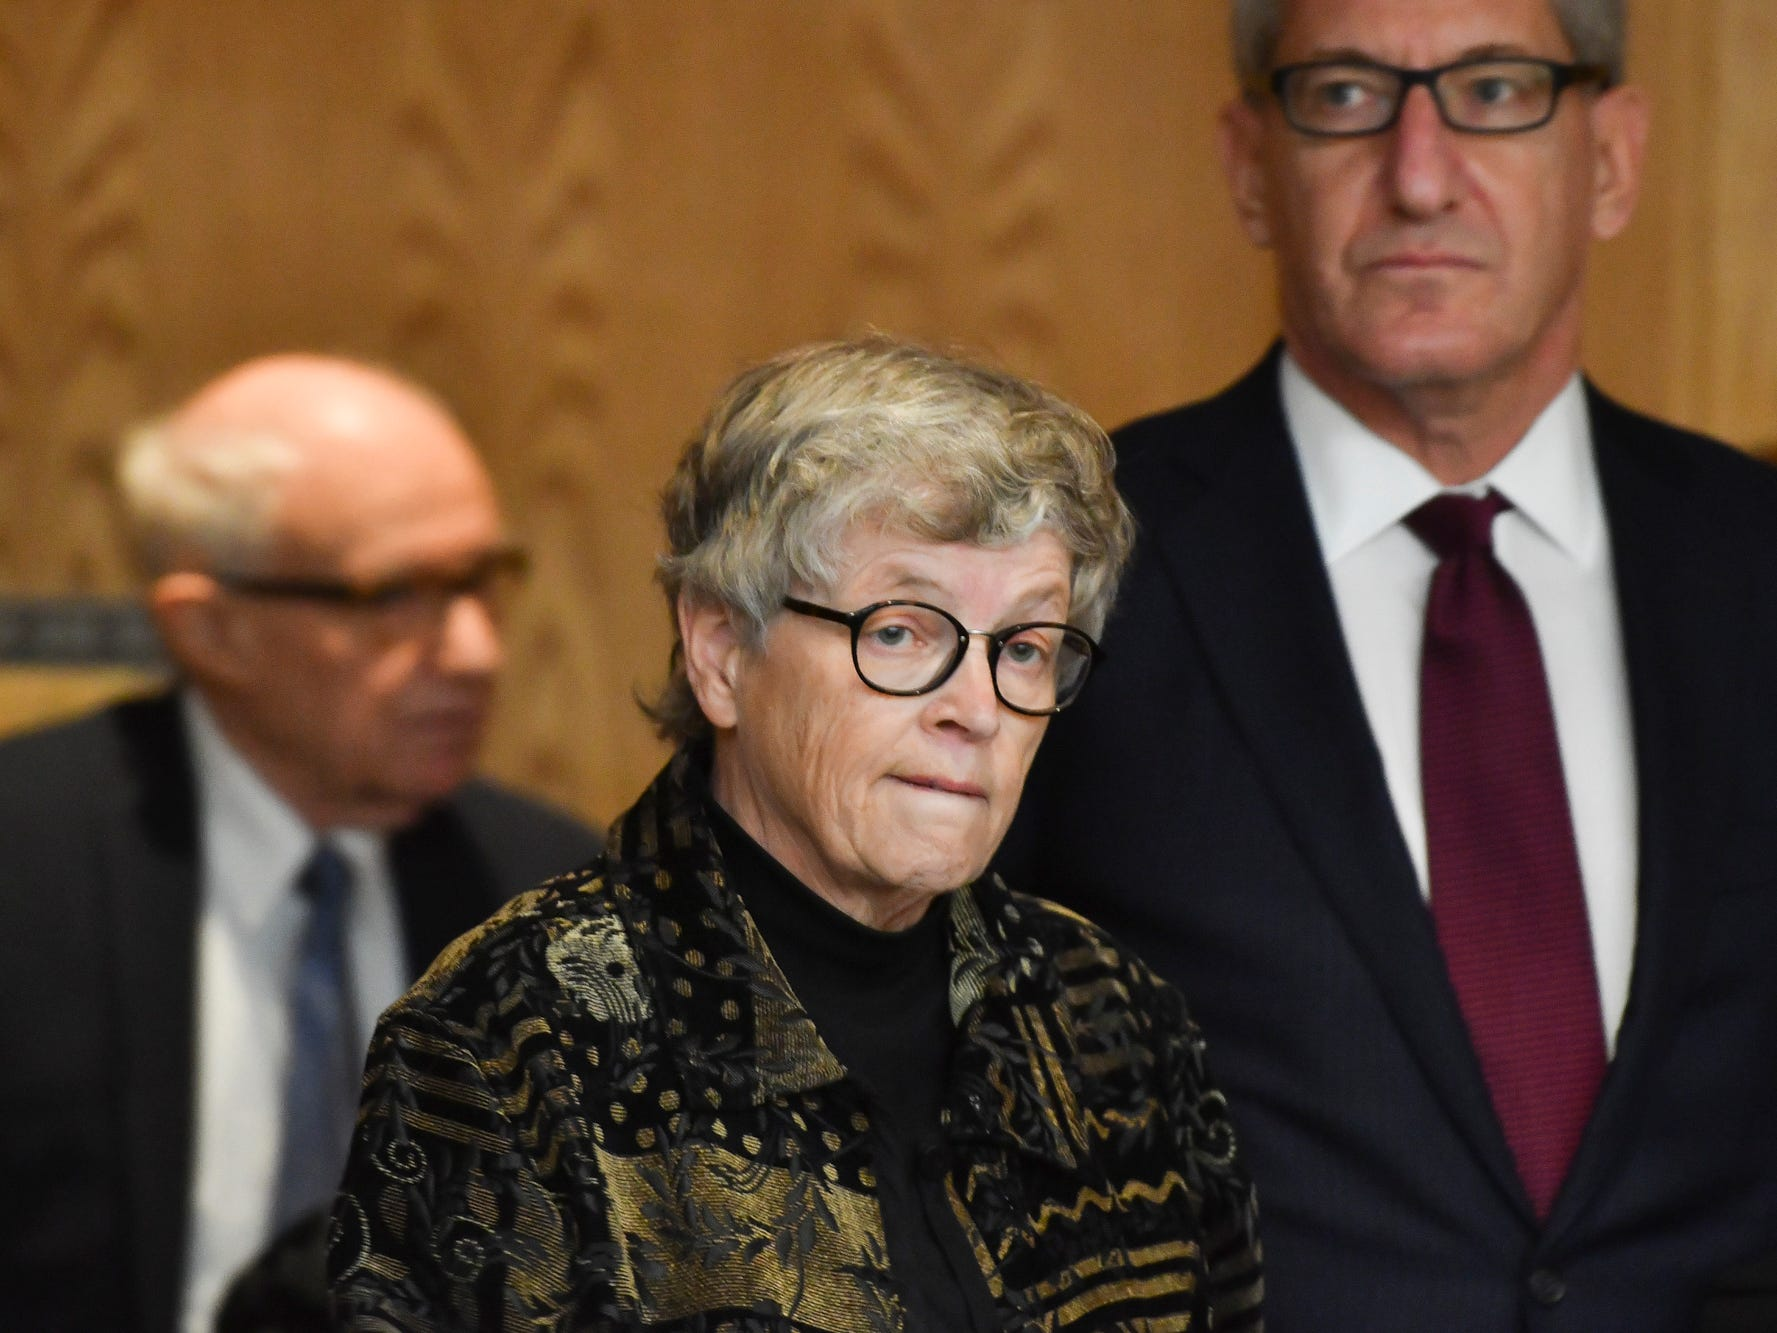 Flanked by her attorneys Mayer Morganroth, left, and Lee Silver, former MSU President Lou Anna Simon appears before Judge Julie Reincke in Eaton County on Monday, Nov. 26, 2018, for her arraignment on four charges of lying to police related to the Larry Nassar investigation.  [AP Photo/Matthew Dae Smith/Lansing State Journal]